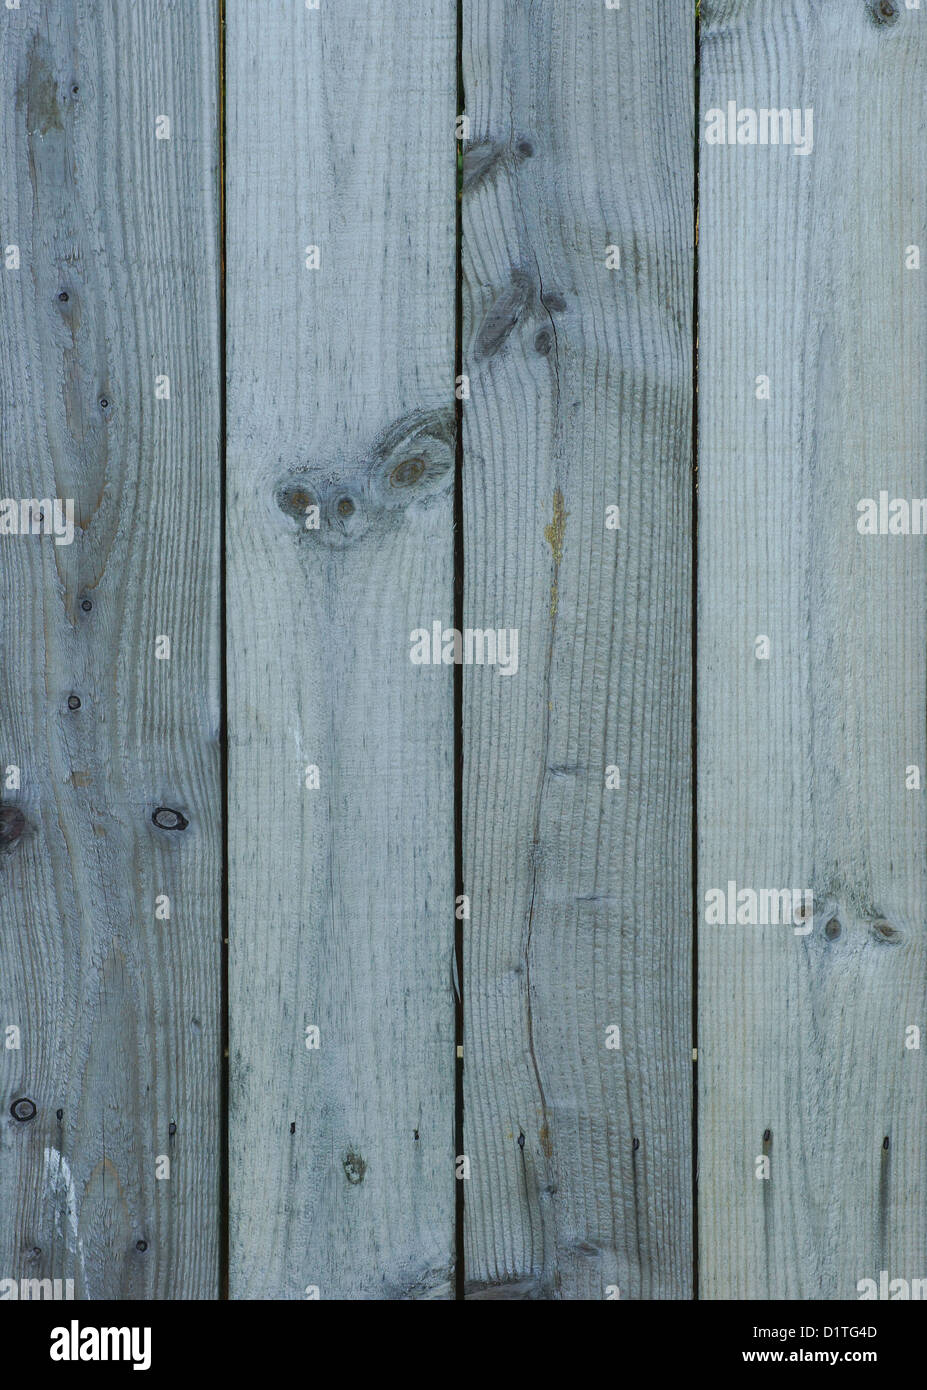 Real Wood Plank Texture Background - Stock Image